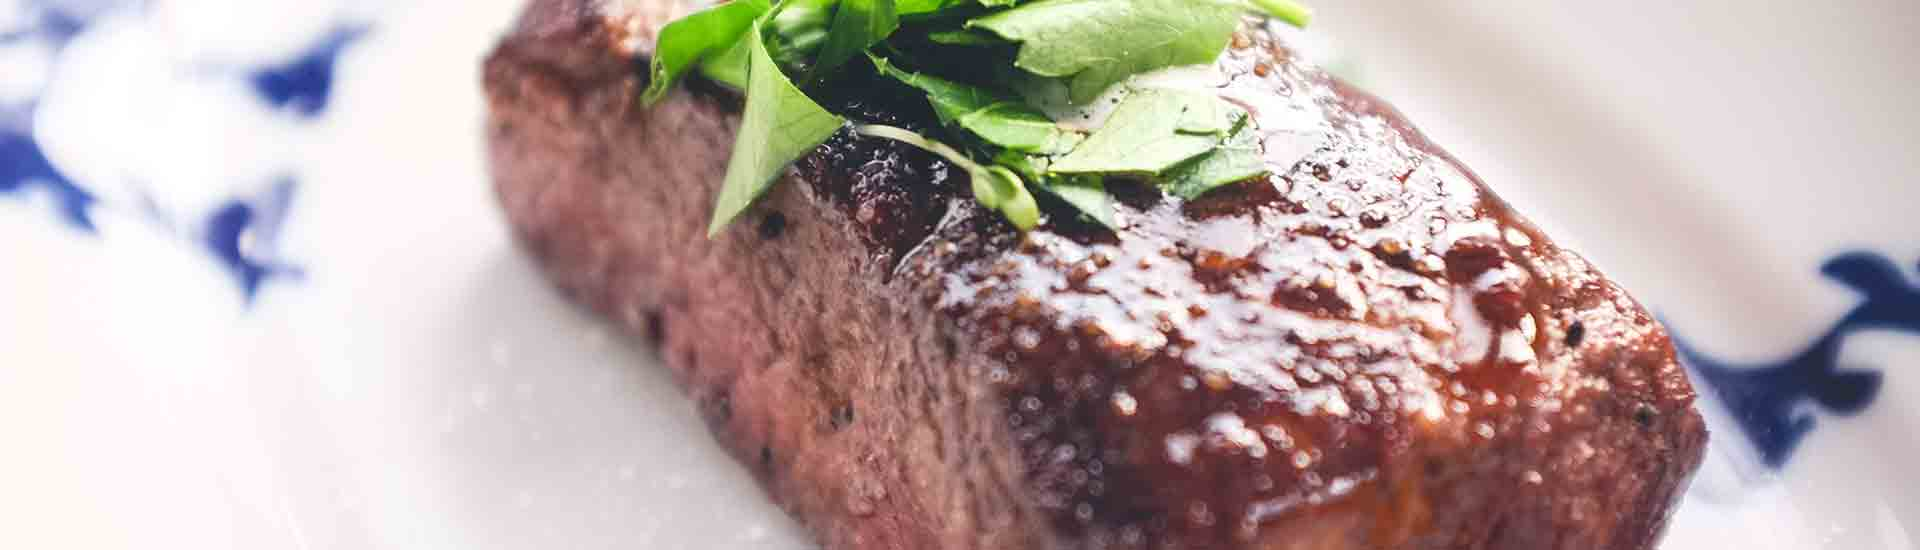 8 Reasons to get a Sous Vide Machine